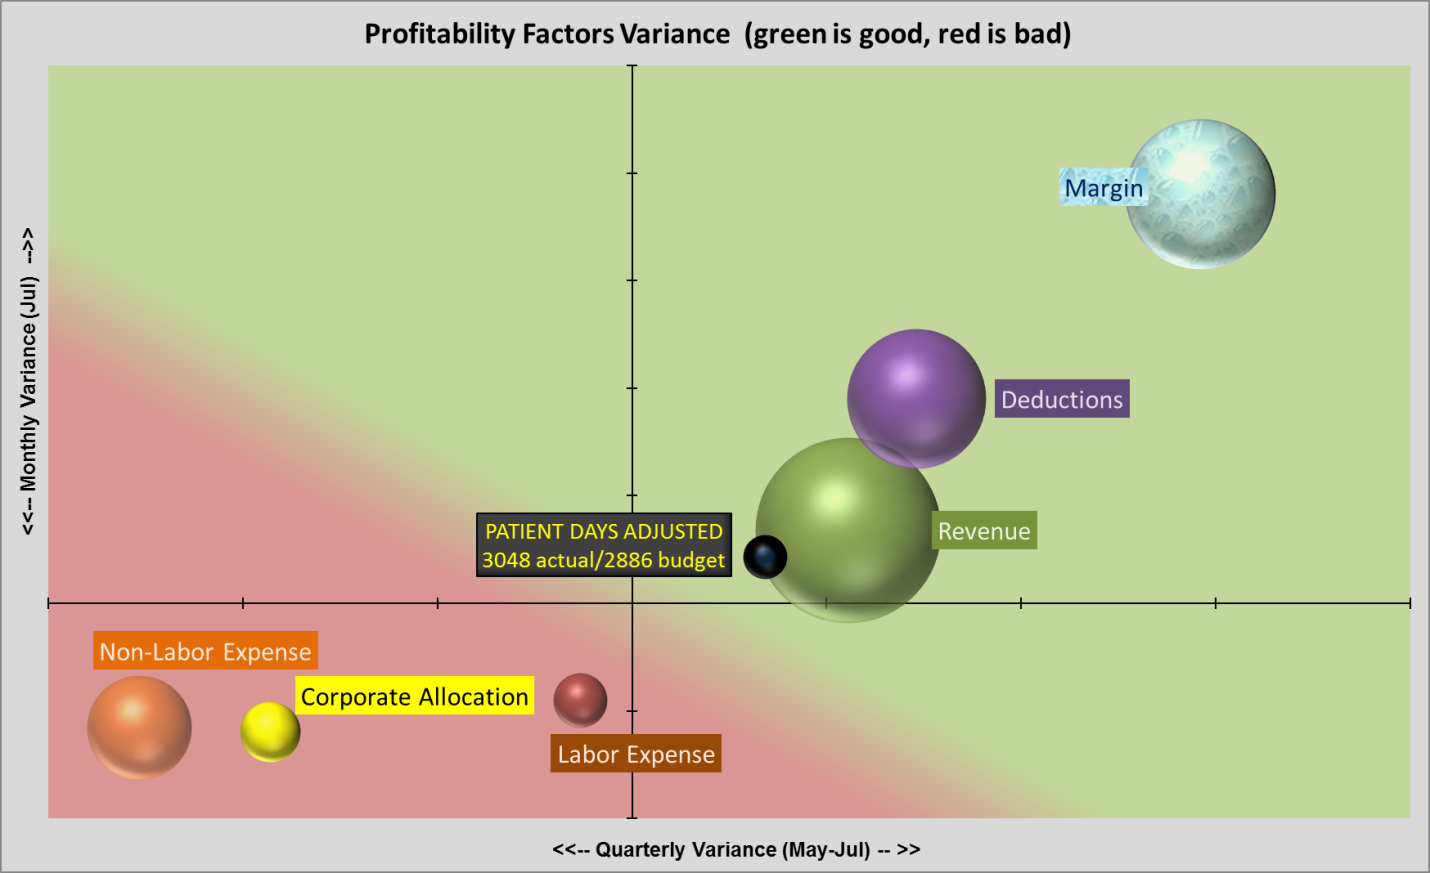 Lean Performance Feedback - intuitive view of the profitability universe